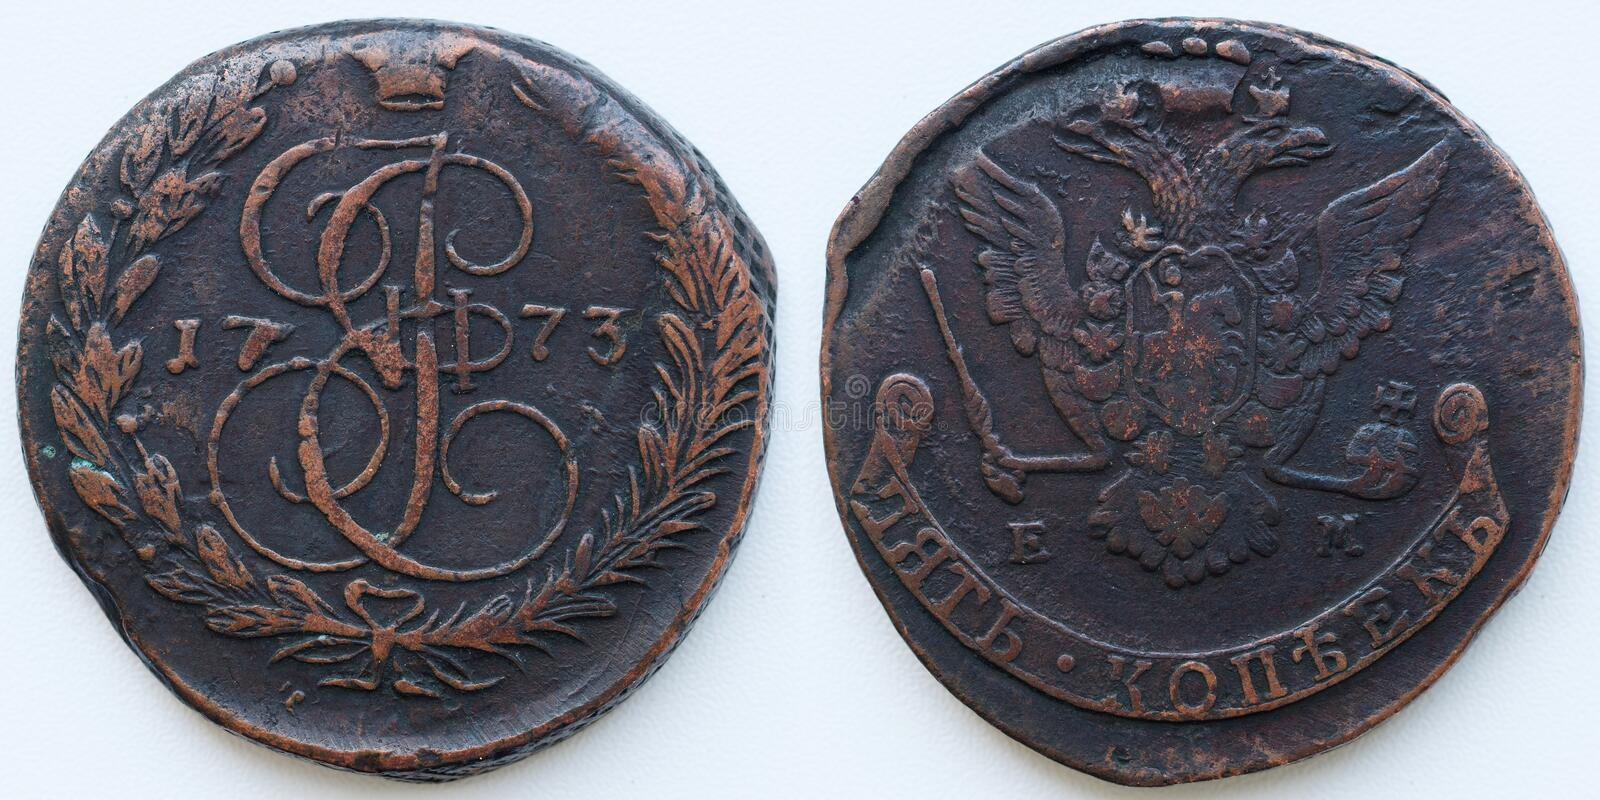 Antique russian coin 5 kopecks 1773. Eagle EM dark brown copper both sides stock image